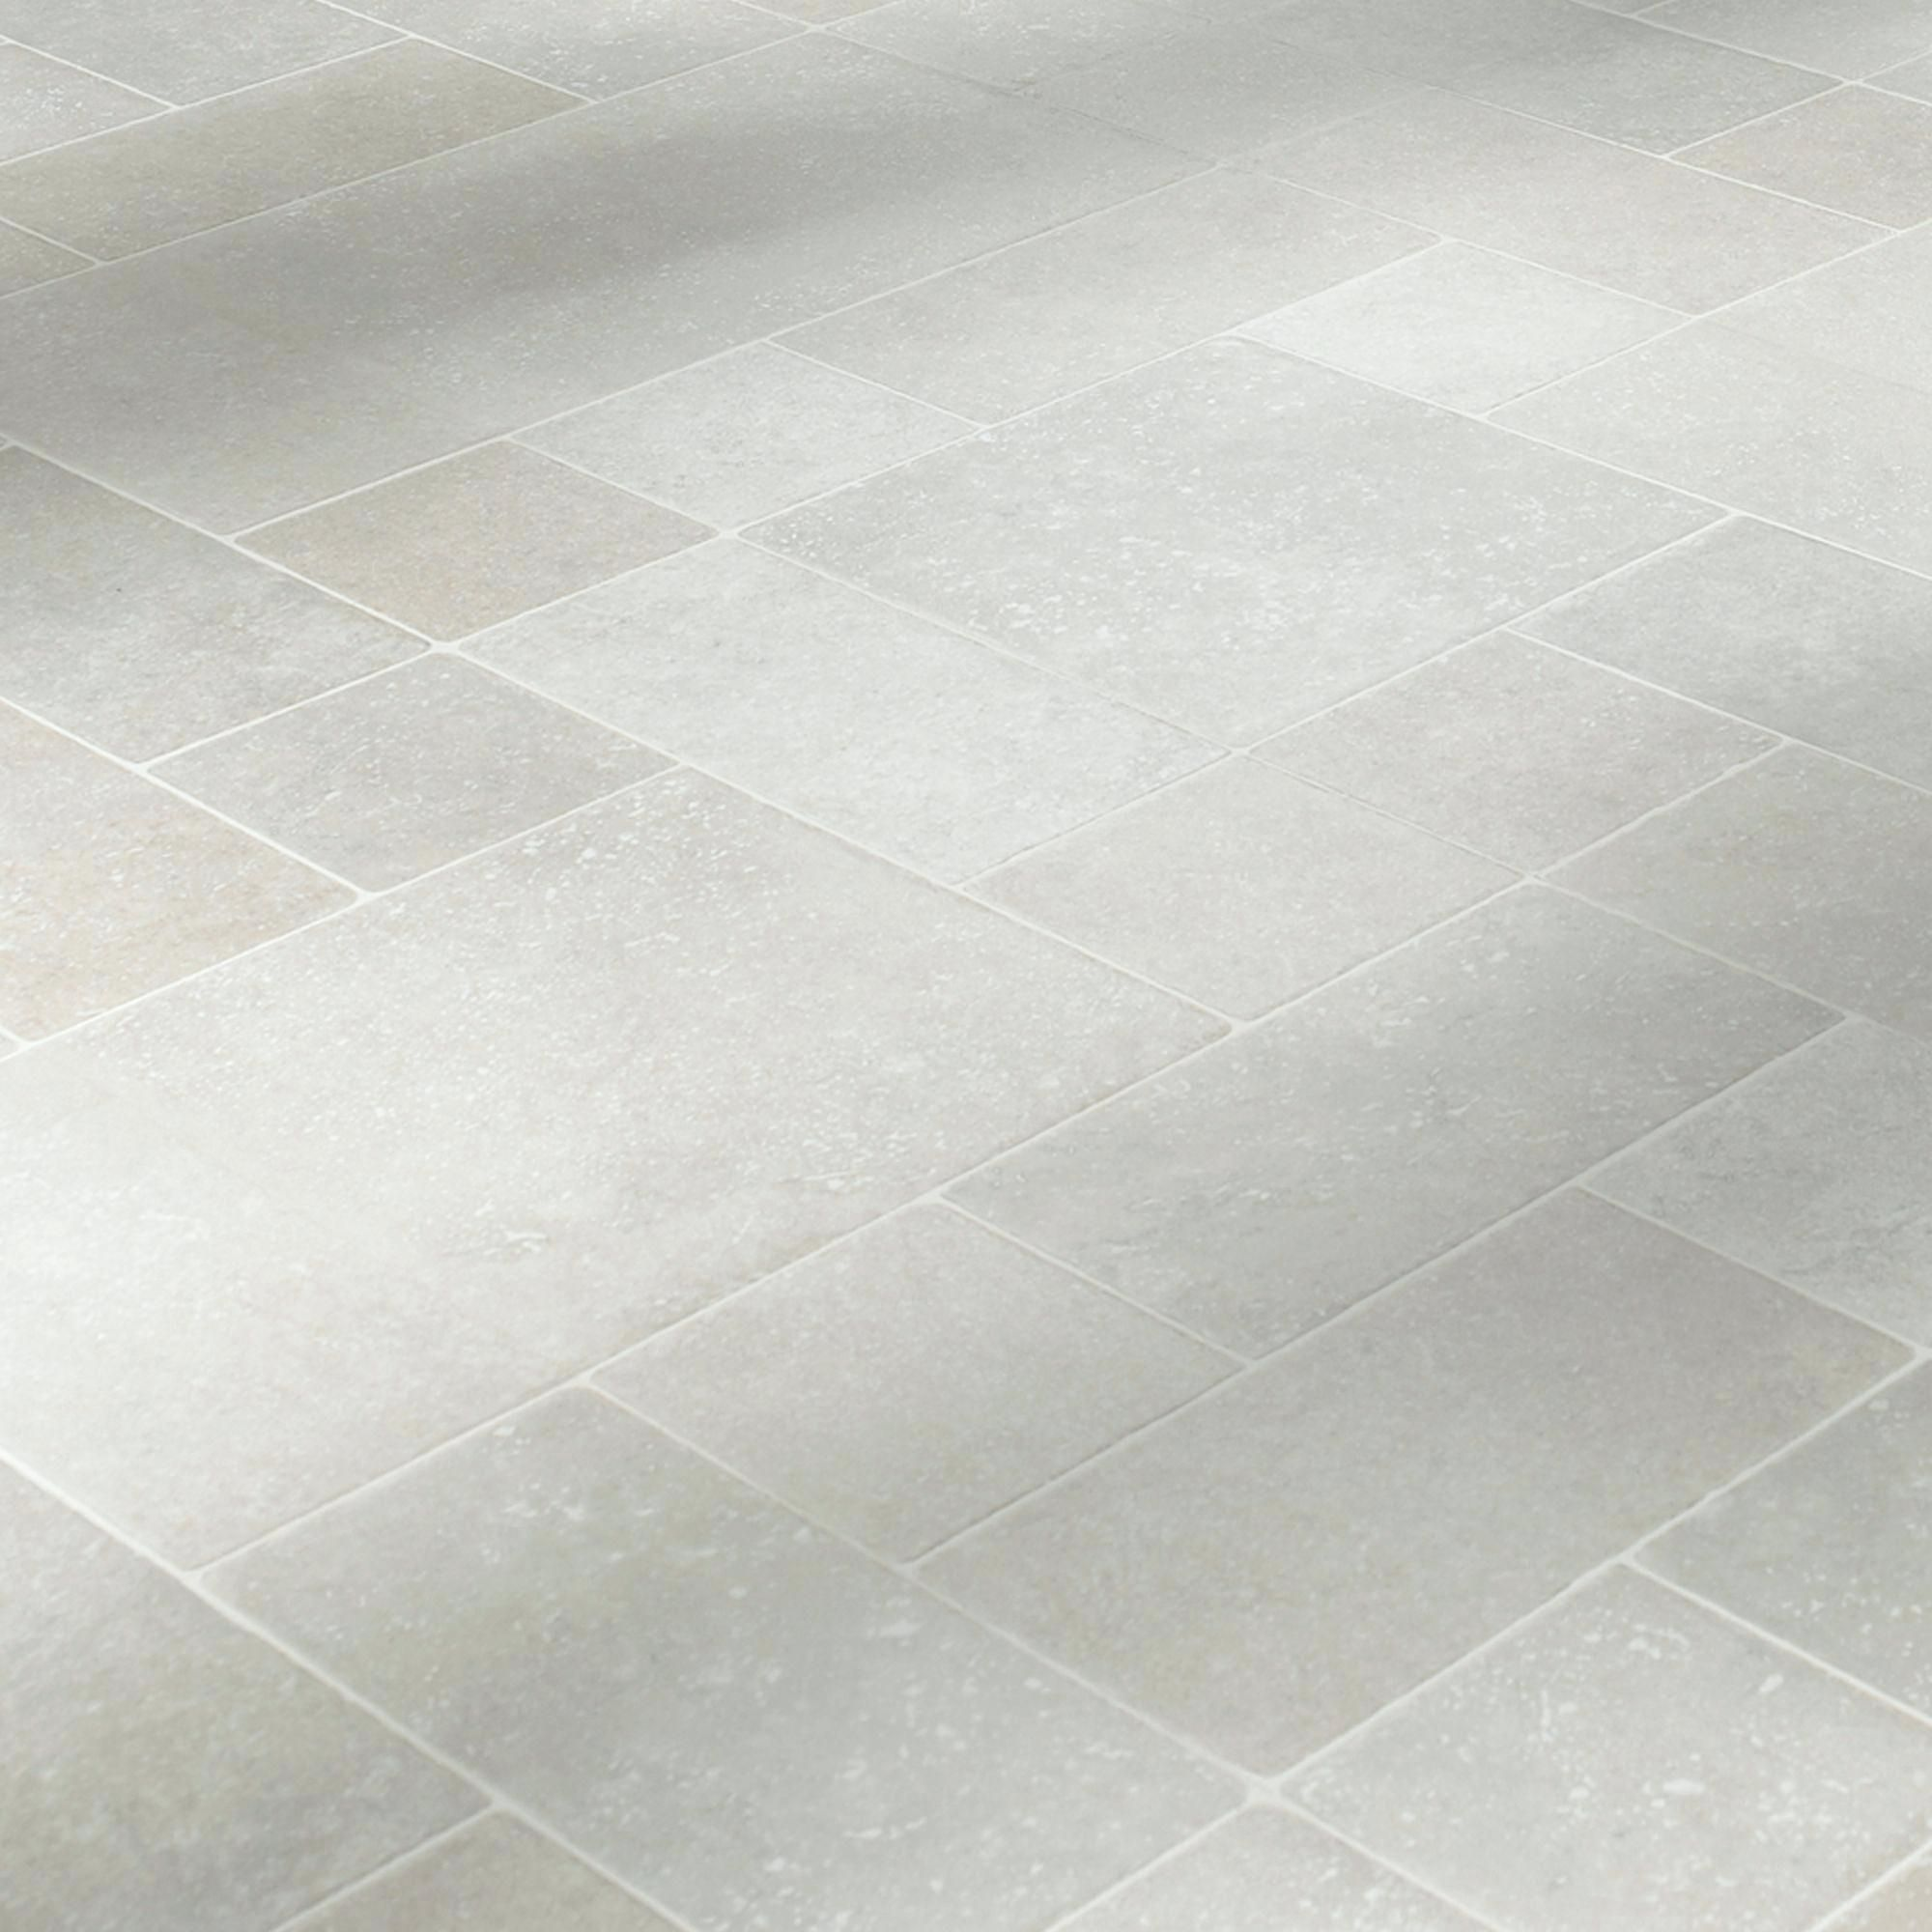 Homebase Floor Tiles Slate